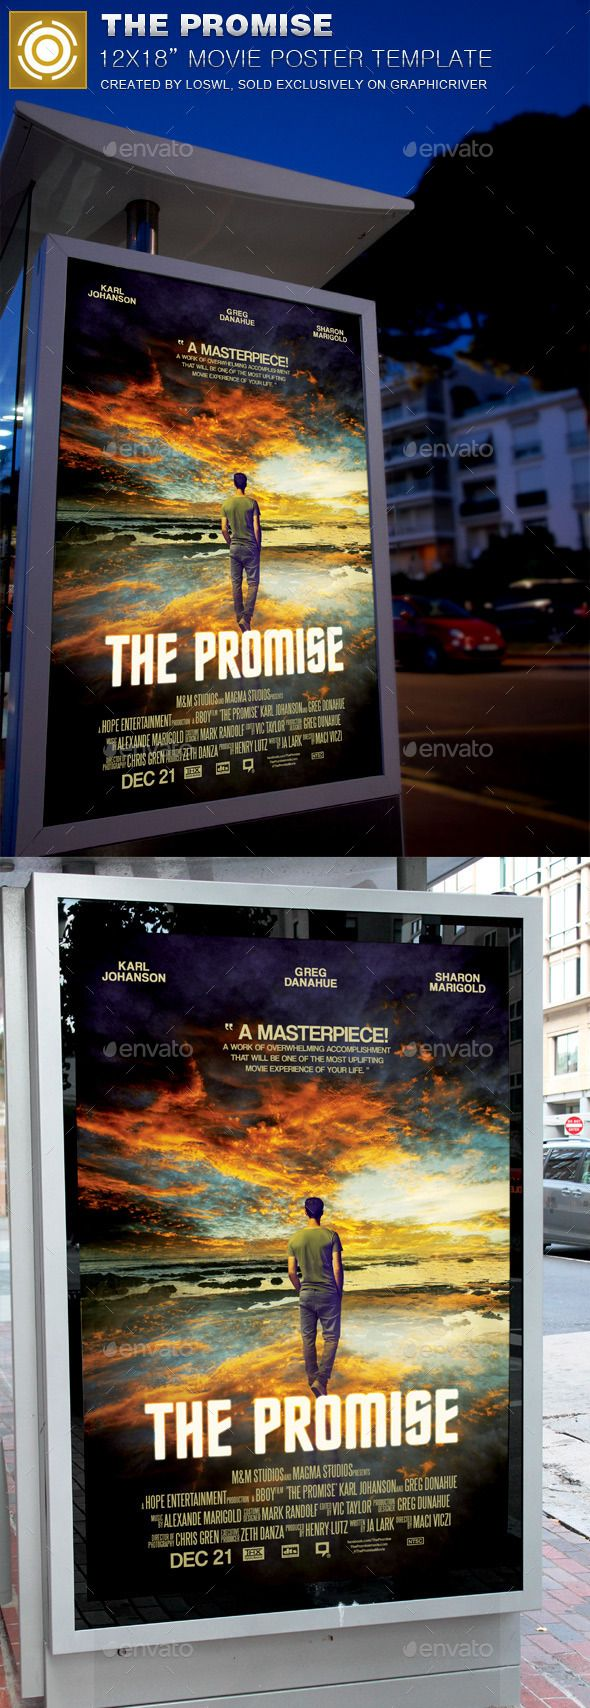 The Promise Movie Poster Template — Photoshop PSD #christian movie #marketing • Available here → https://graphicriver.net/item/the-promise-movie-poster-template/11934603?ref=pxcr